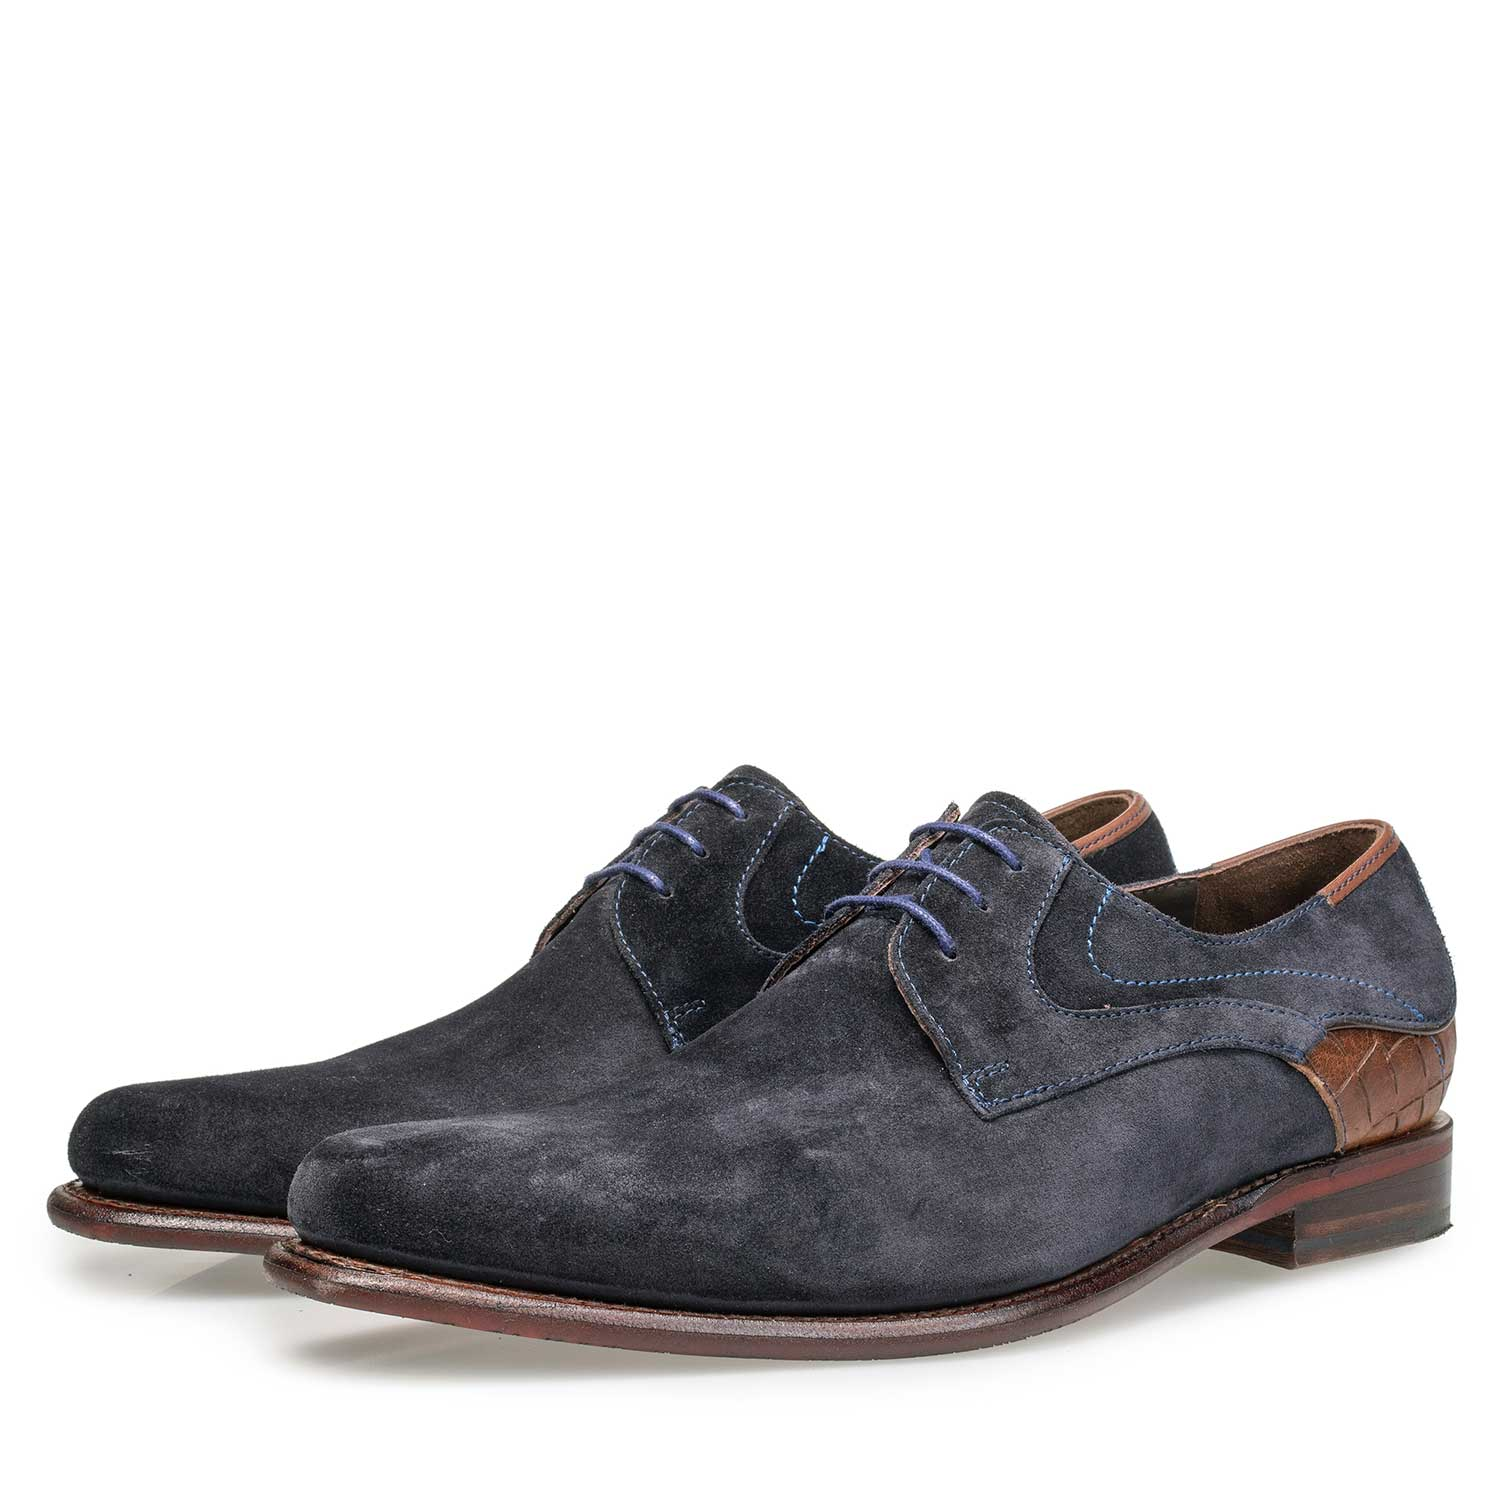 18079/00 - Dark blue calf suede leather lace shoe